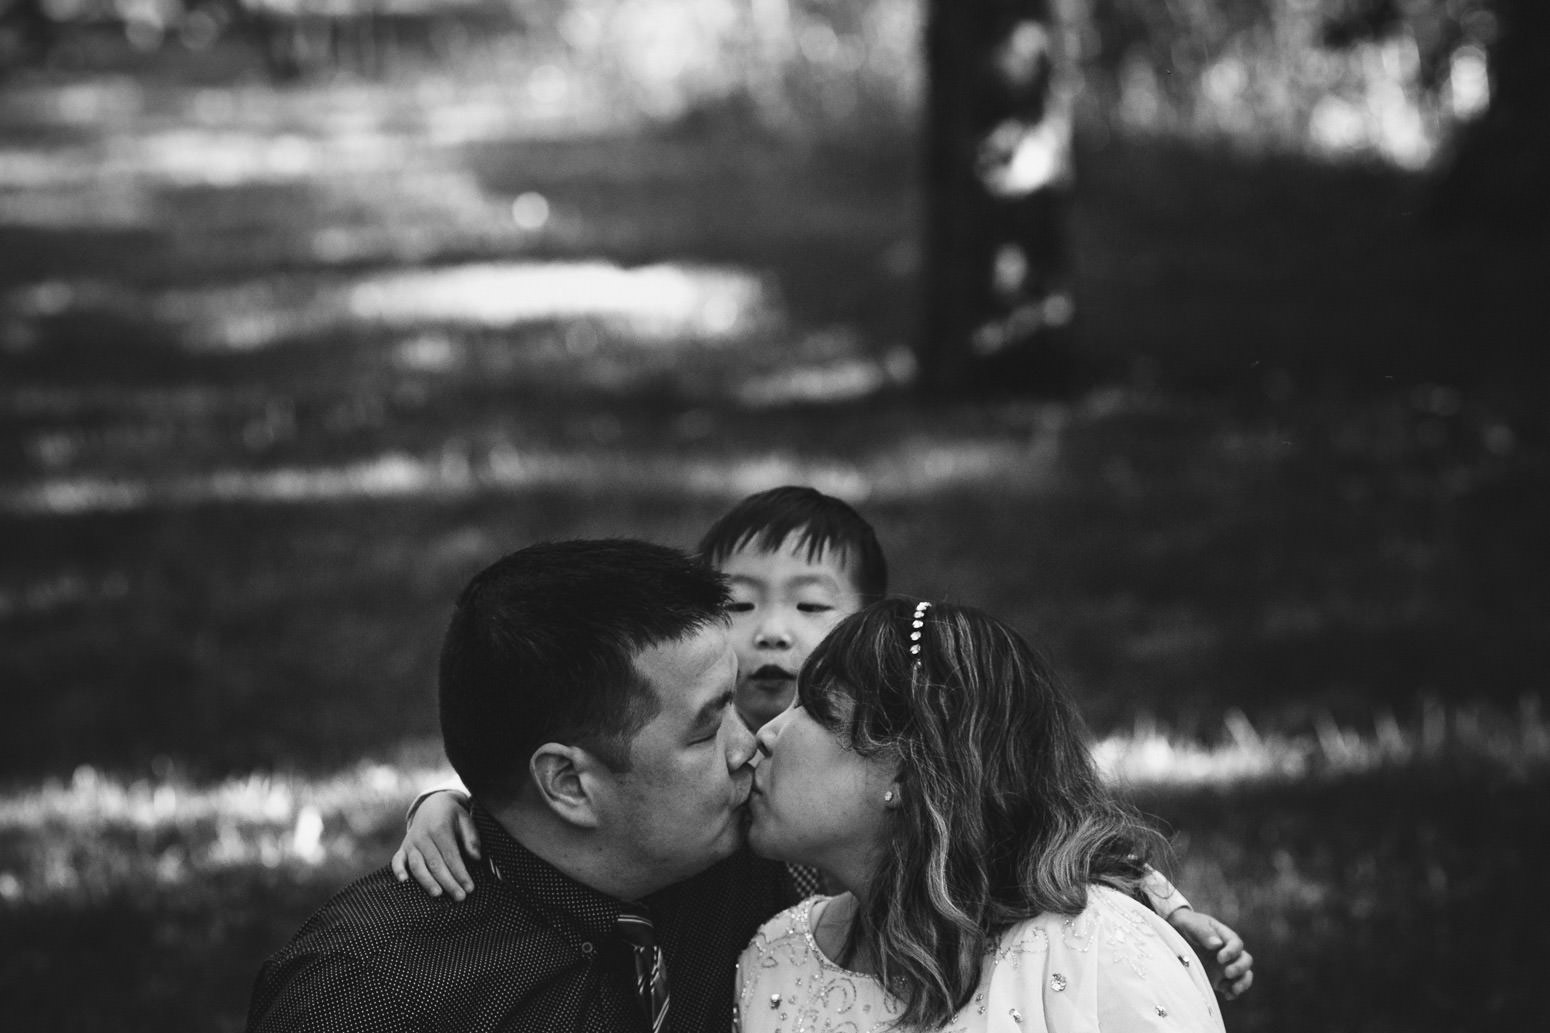 Mom and Dad kiss while son lurks behind them